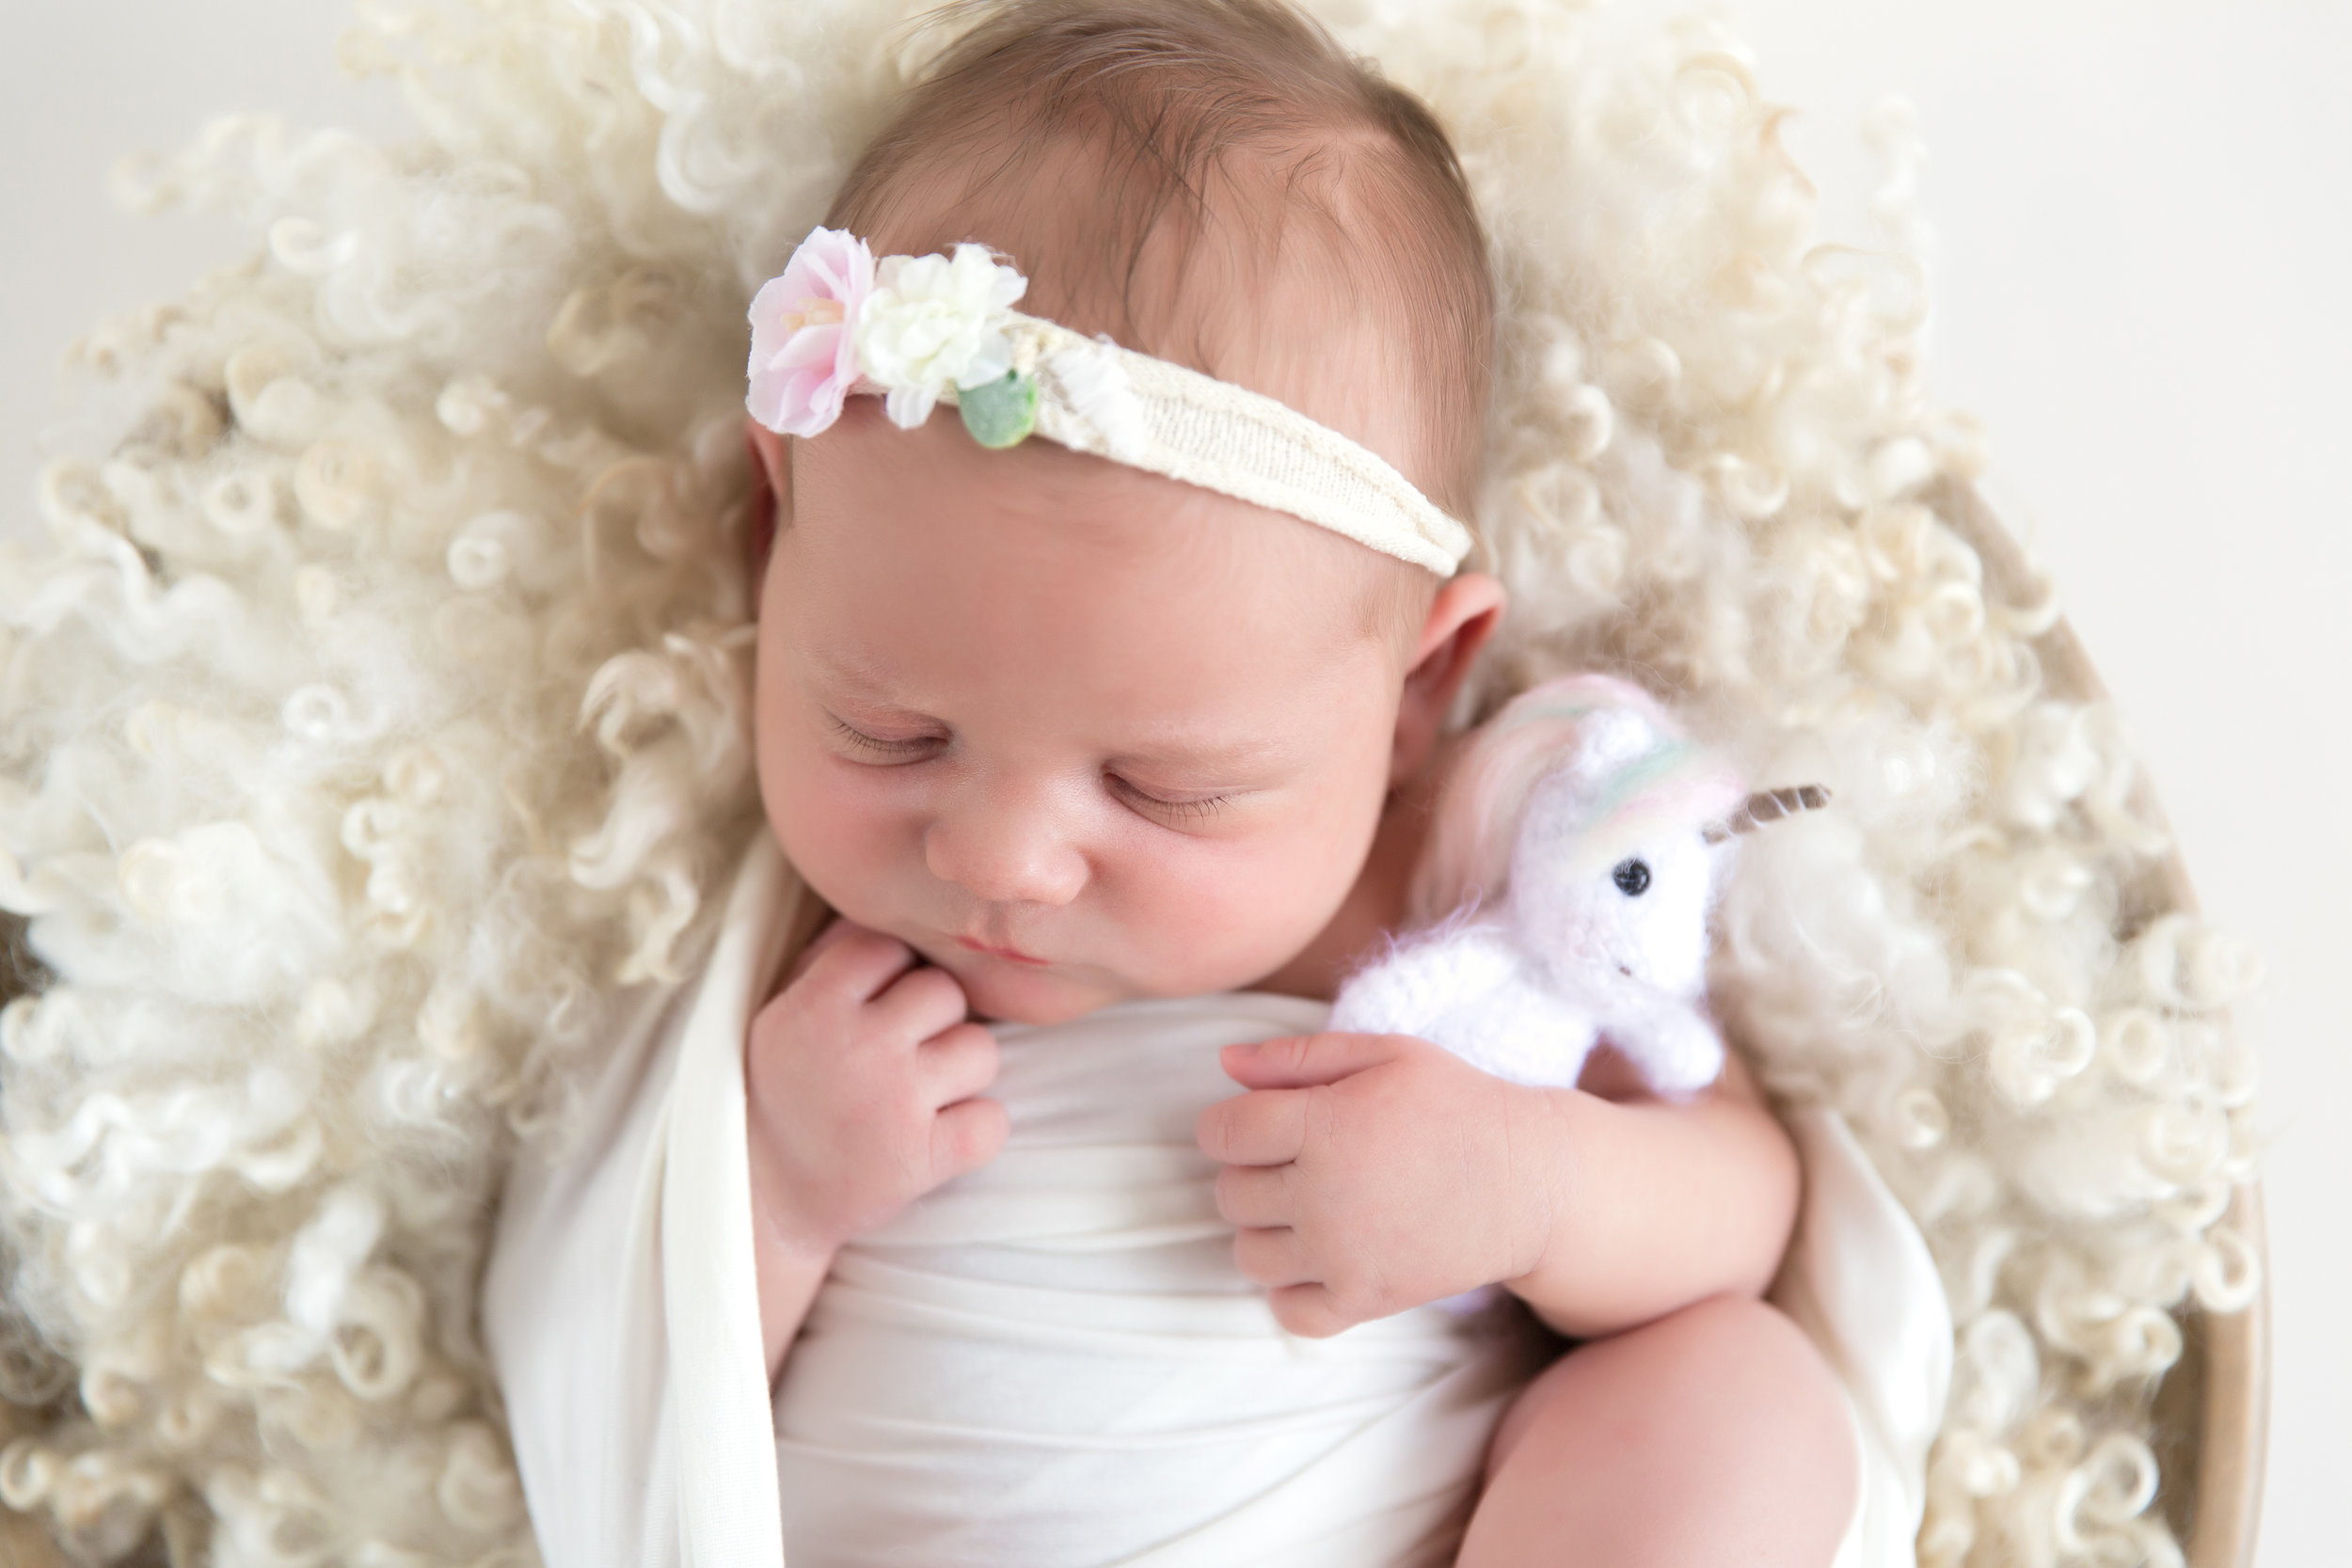 Newborn baby girl with a unicorn plush toy. Airdrie Newborn photographer. Milashka Photography